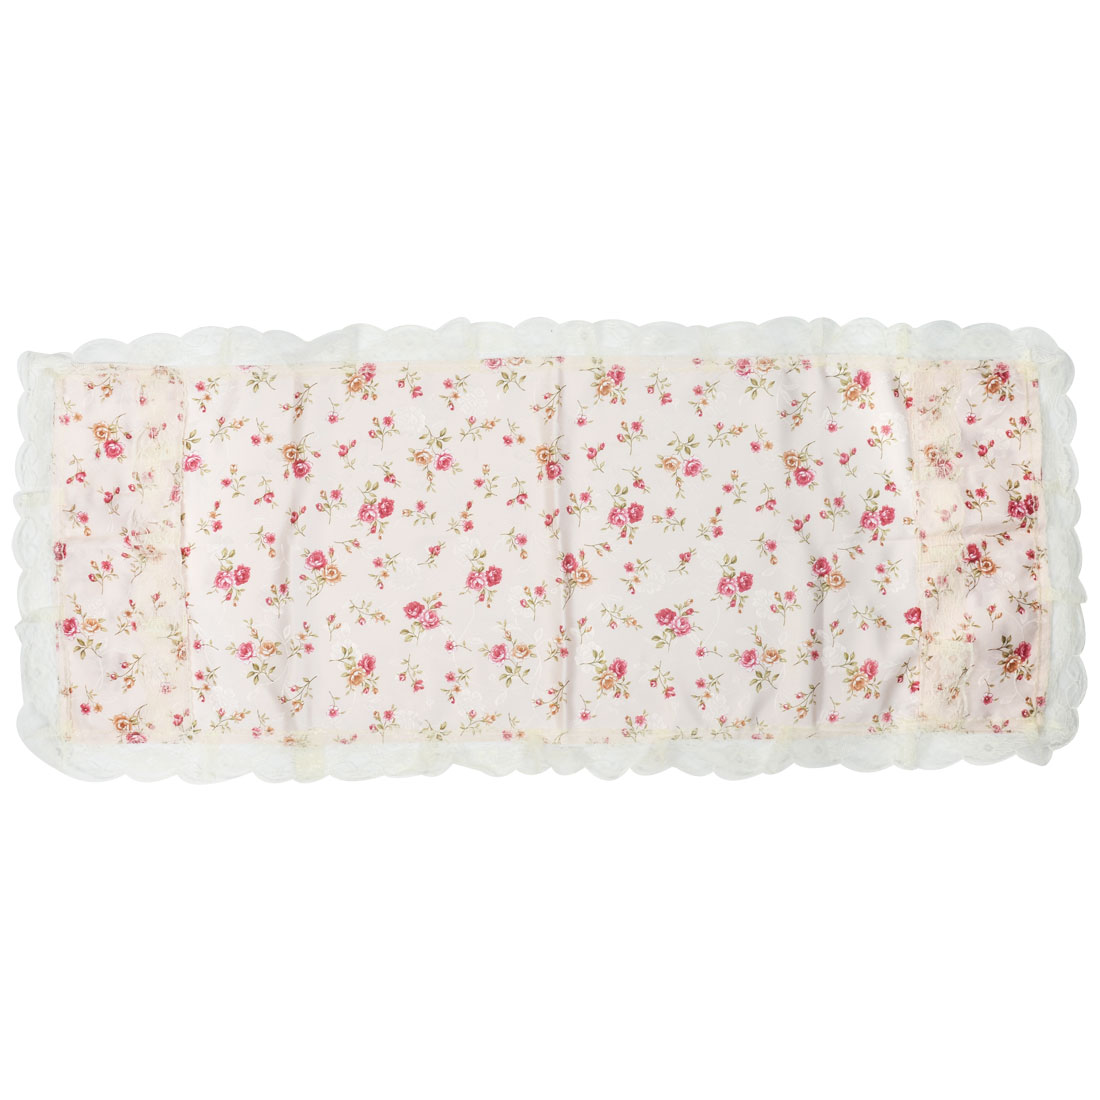 Household Refrigerator Fridge Desktop Polyester Flower Pattern Dust Cover Light Pink